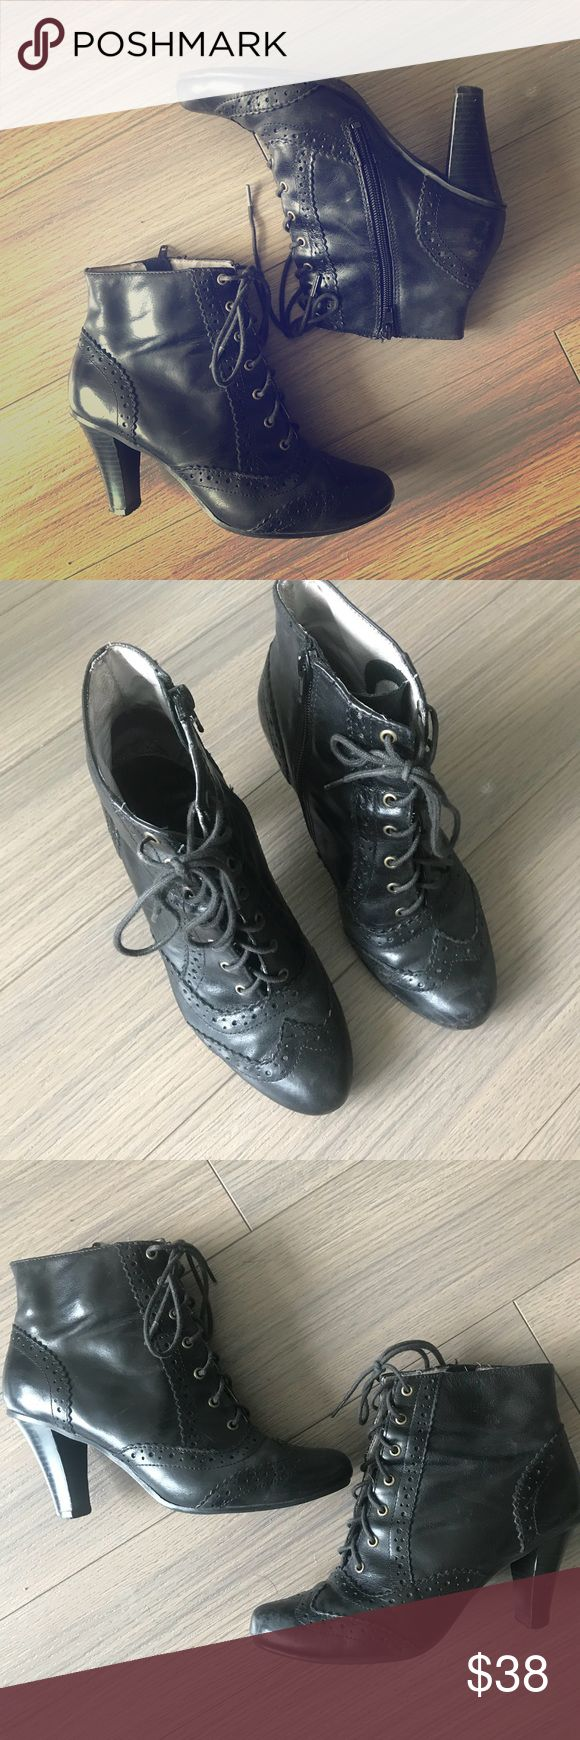 Hush puppy Oxford style boots with heel Black Oxford style heeled boots. Super cute, comes with cord laces as well as ribbon laces. Extremely comfortable and easy to wear all day. Minor scrapes on back of the heal. Hush Puppies Shoes Ankle Boots & Booties